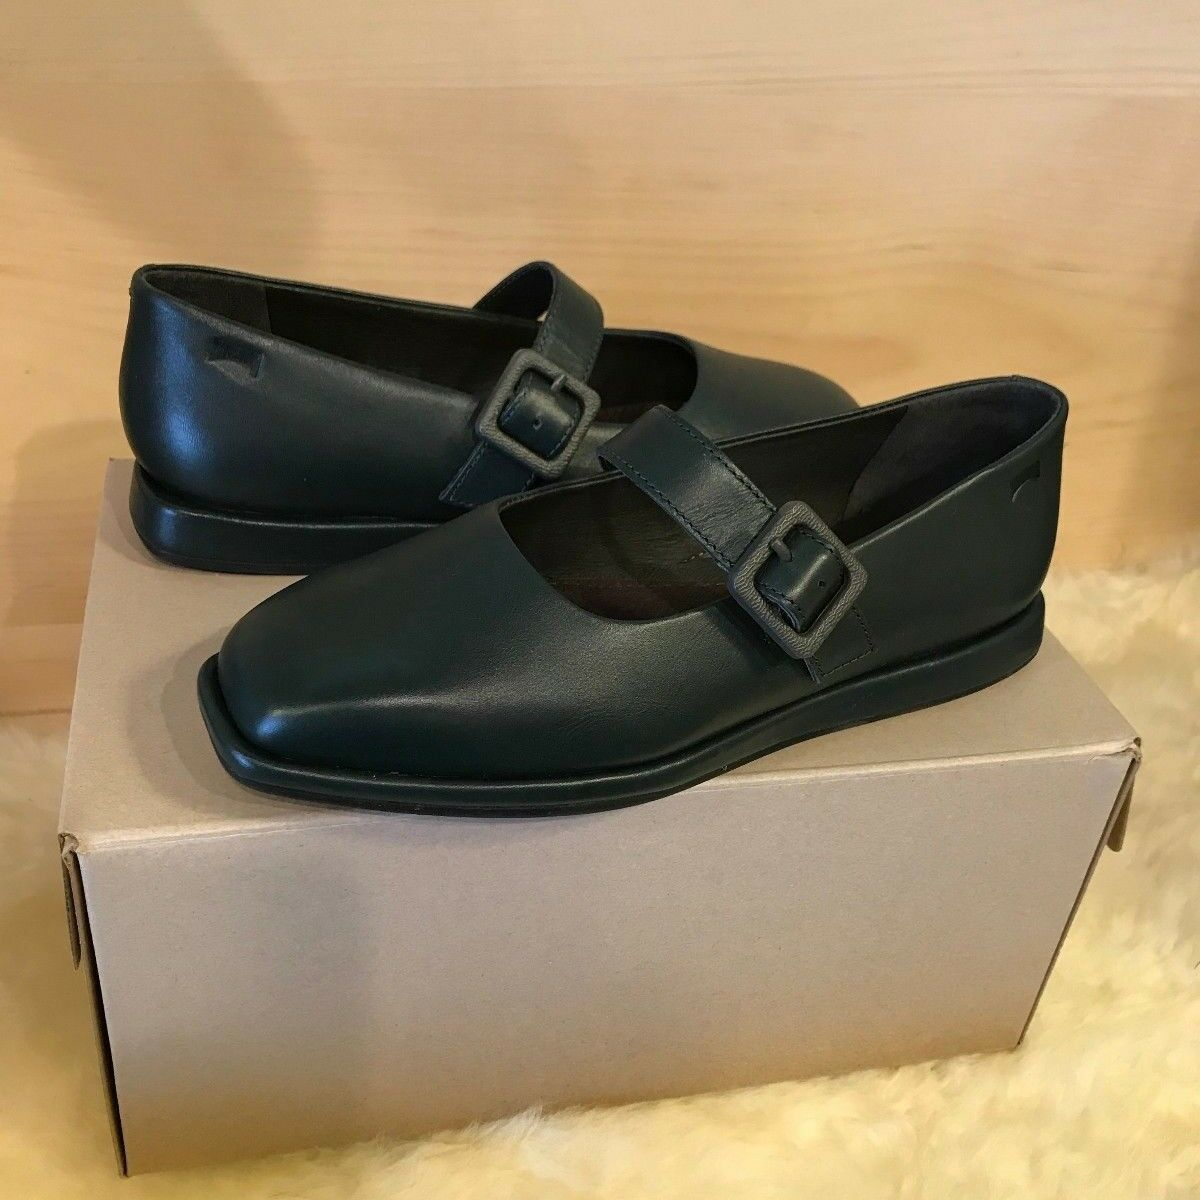 CAMPER Women K200226 Fidelia, Green Leather Buckle Mary Janes shoes, shoes, shoes, Size US 7 3ccffa